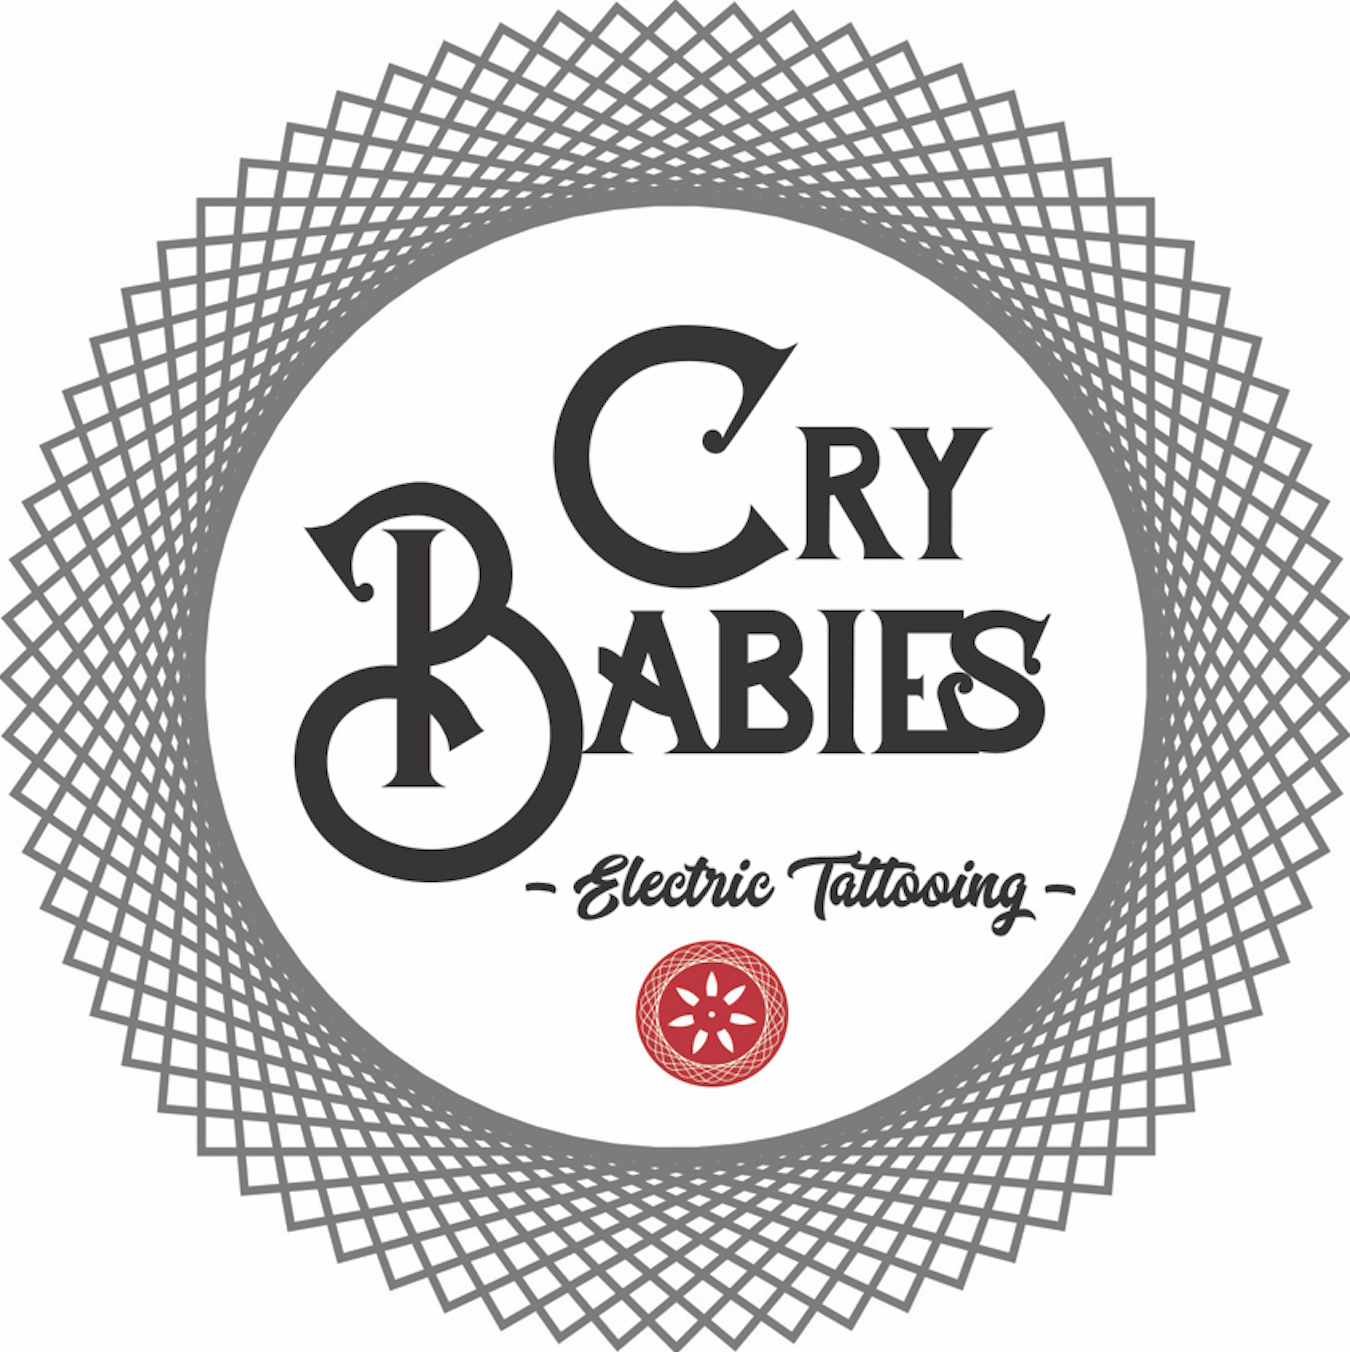 Cry Babies Electric Tattooing